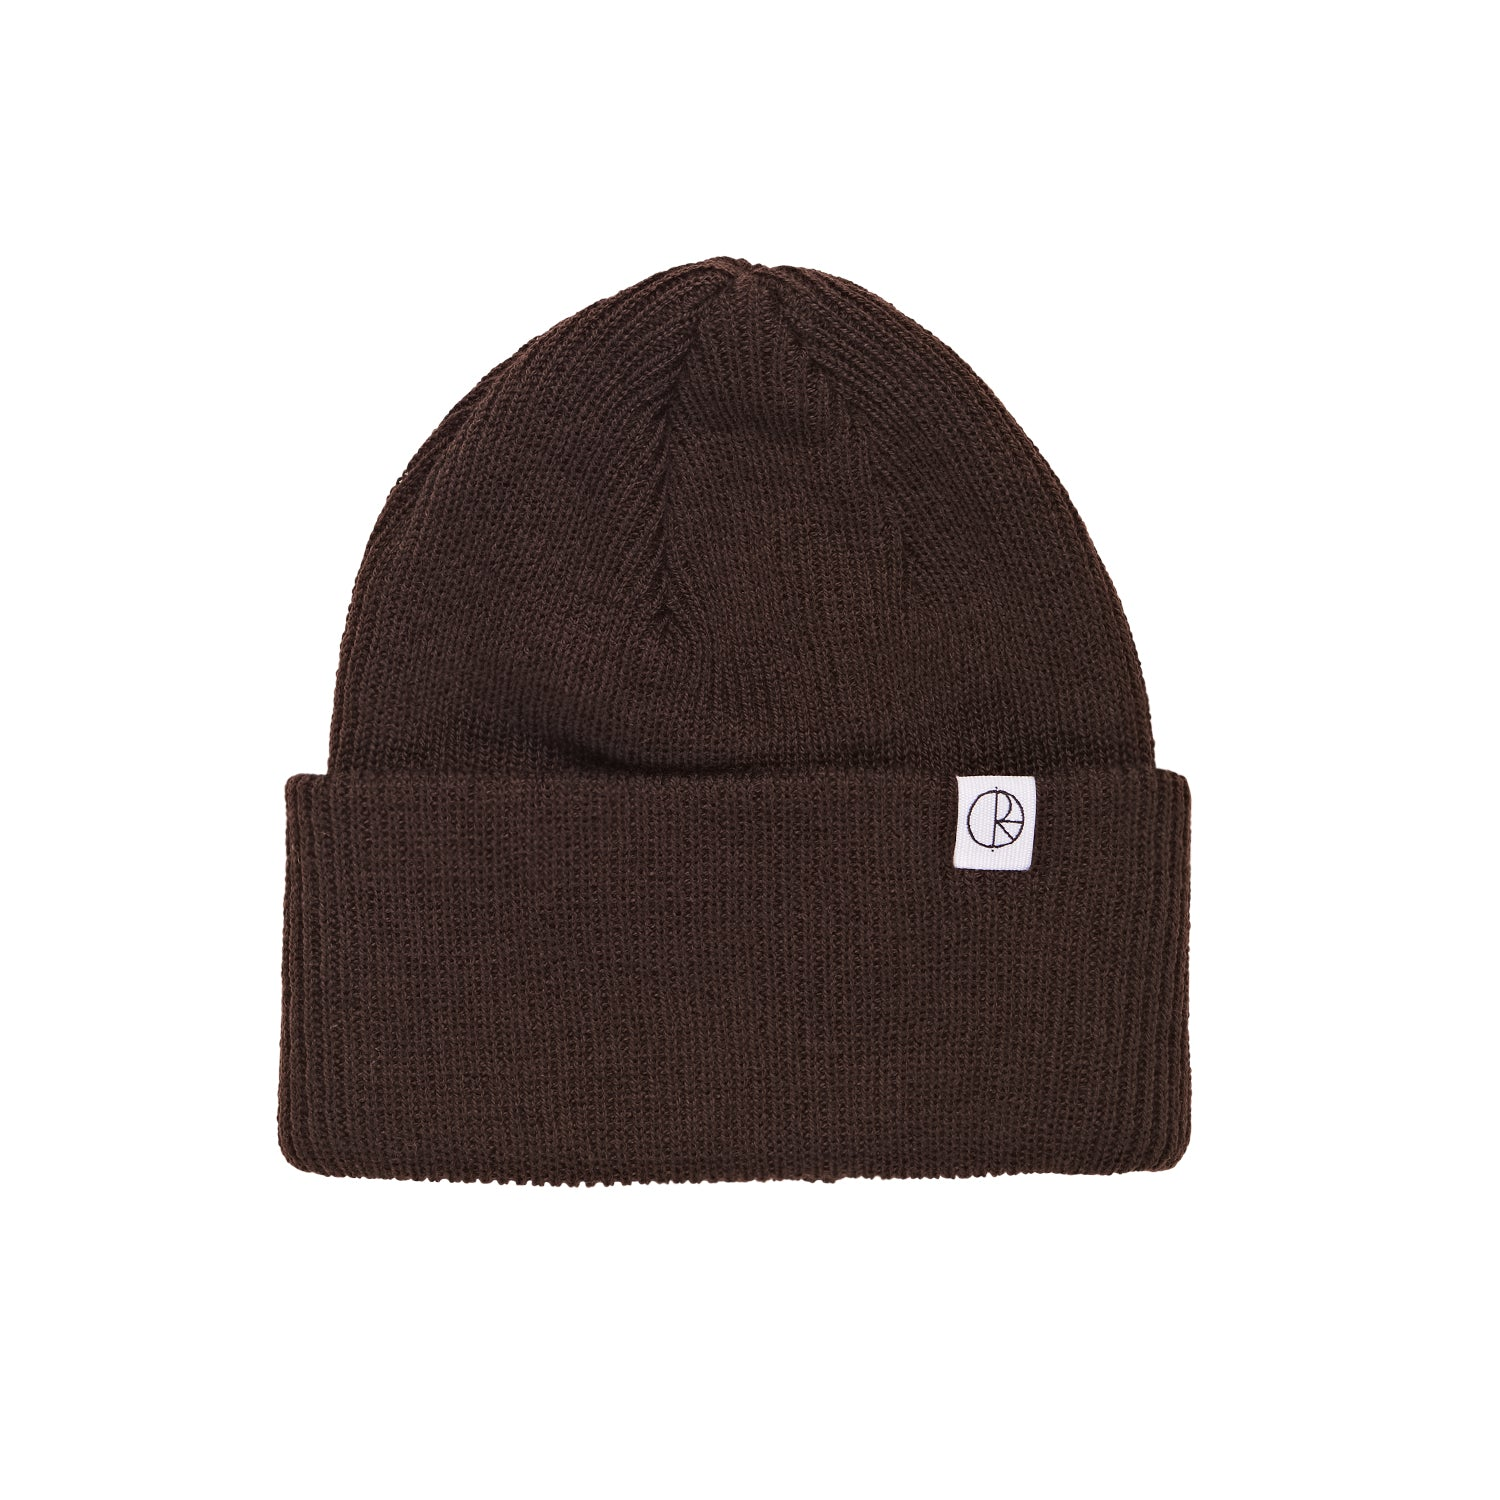 Merino Wool Beanie Brown